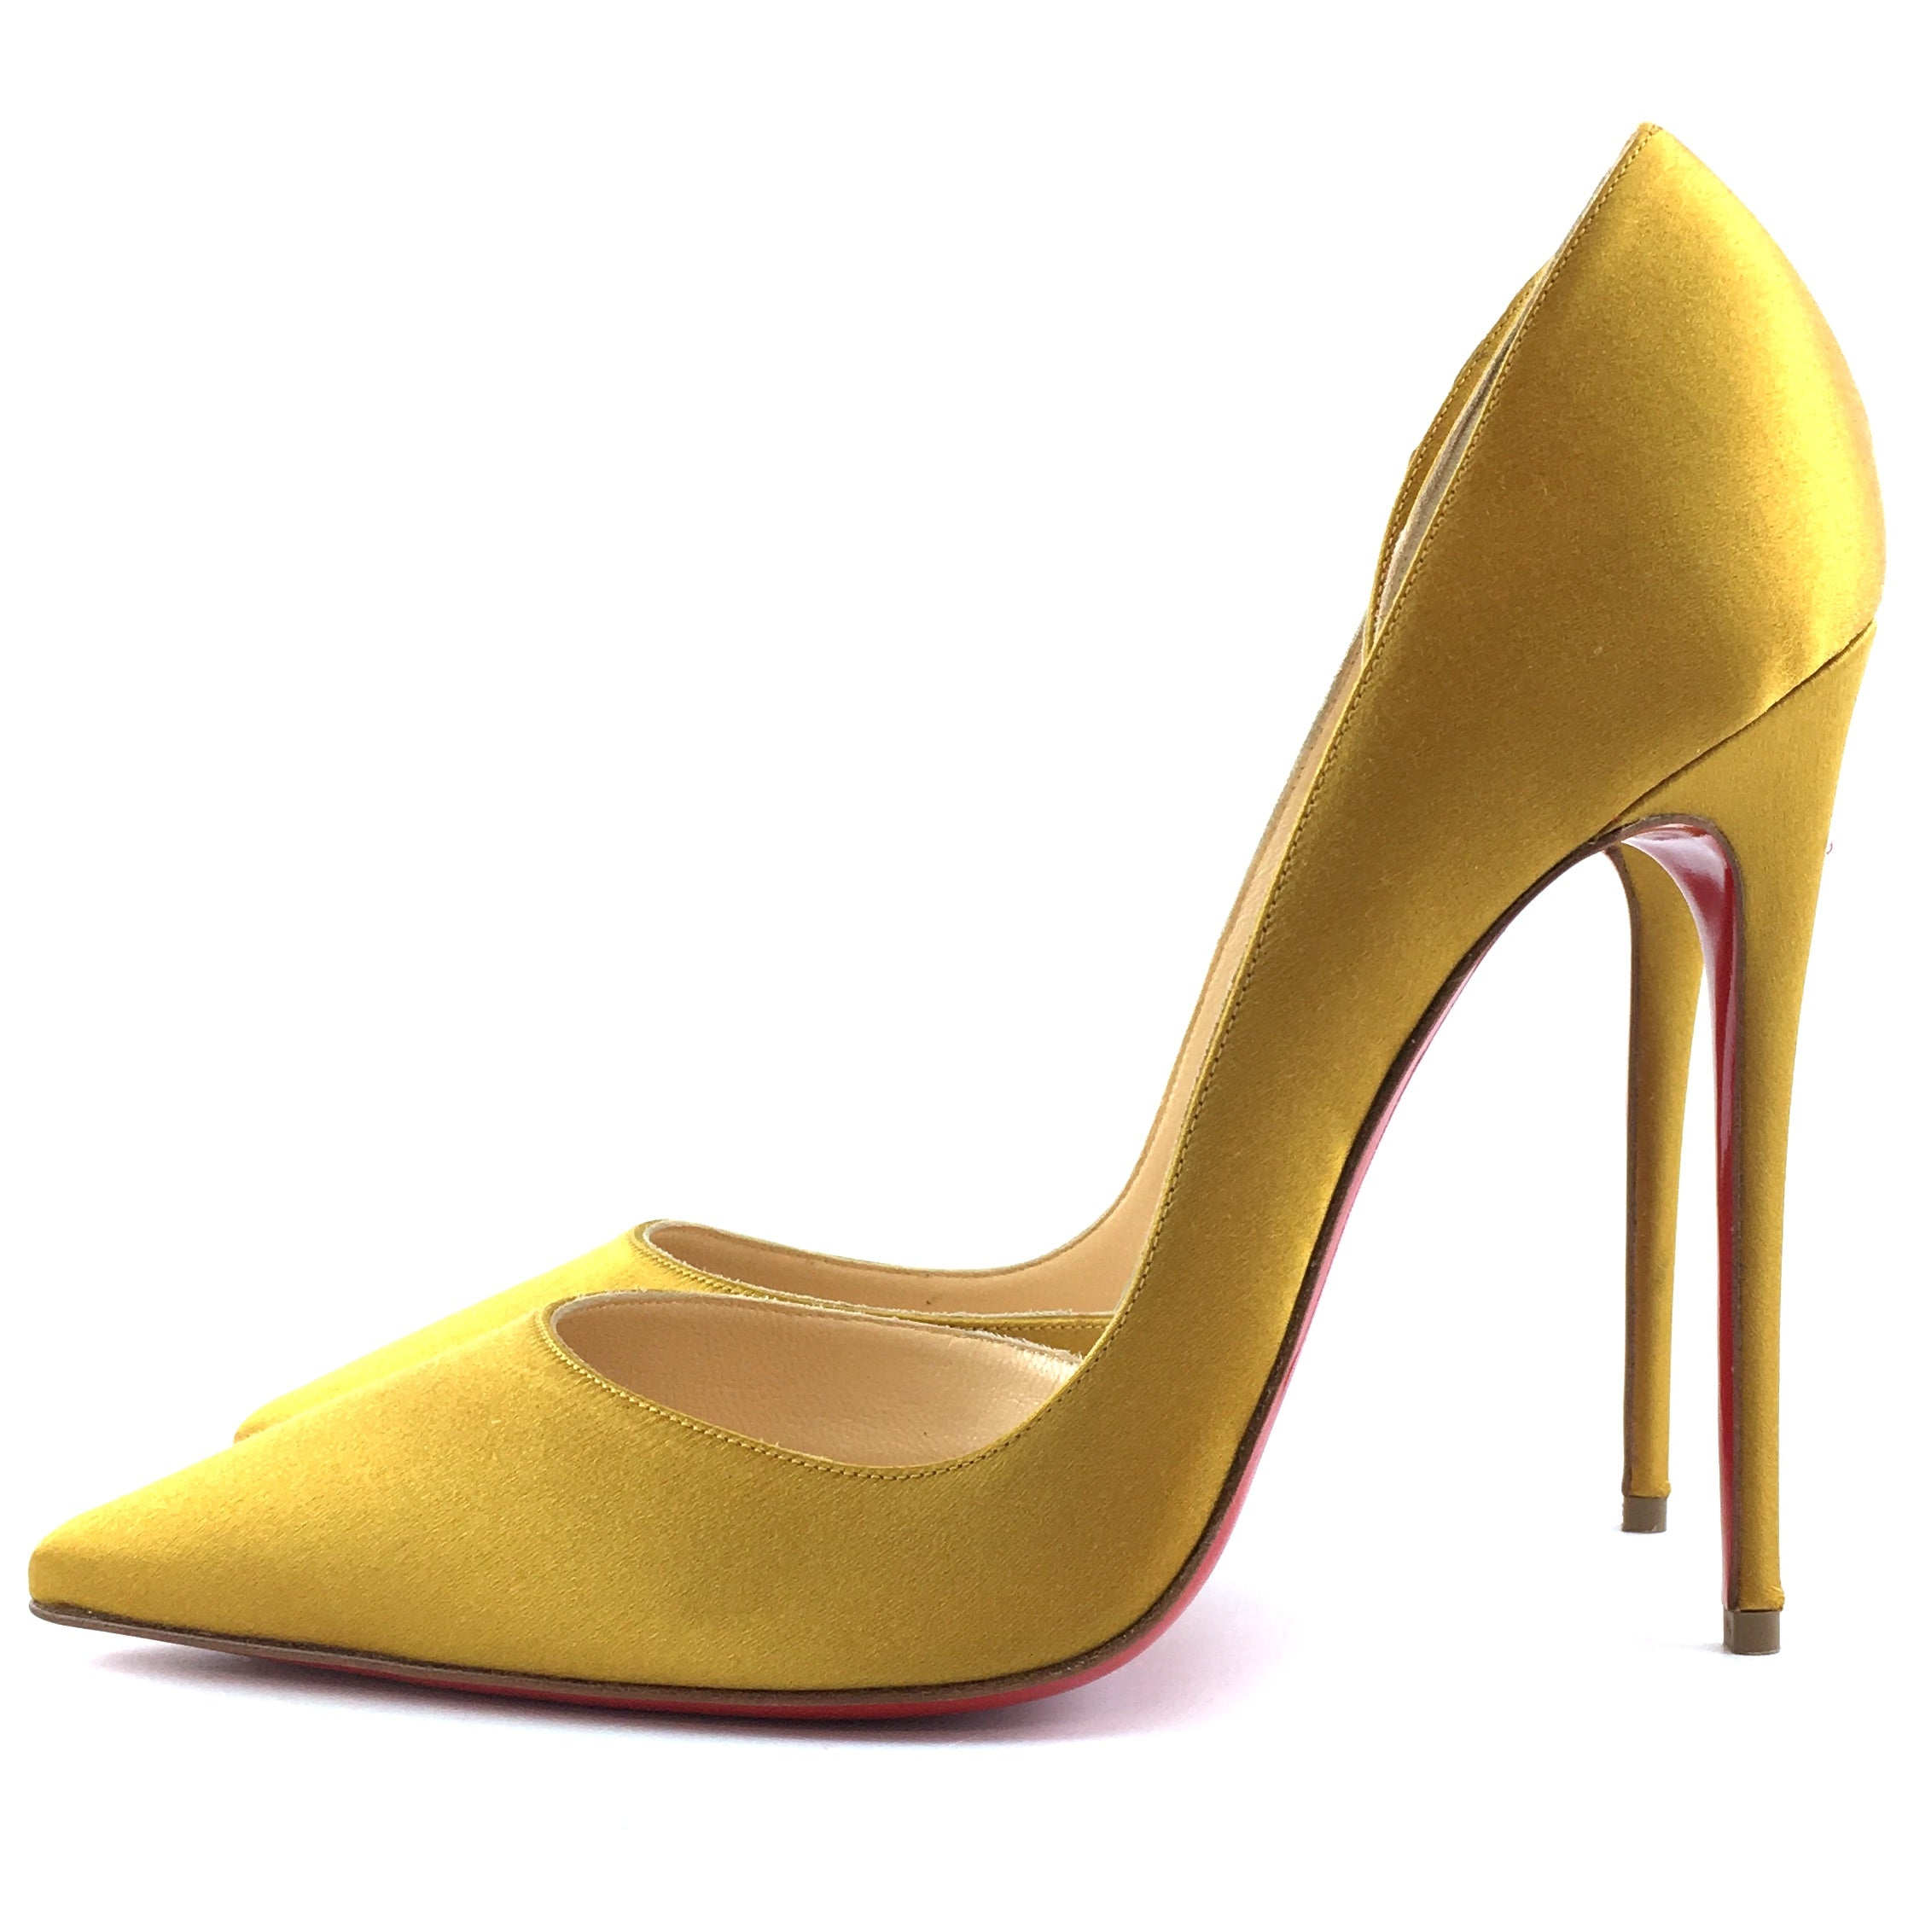 Christian Louboutin Yellow Iriza 120 Satin Tilleul Pumps